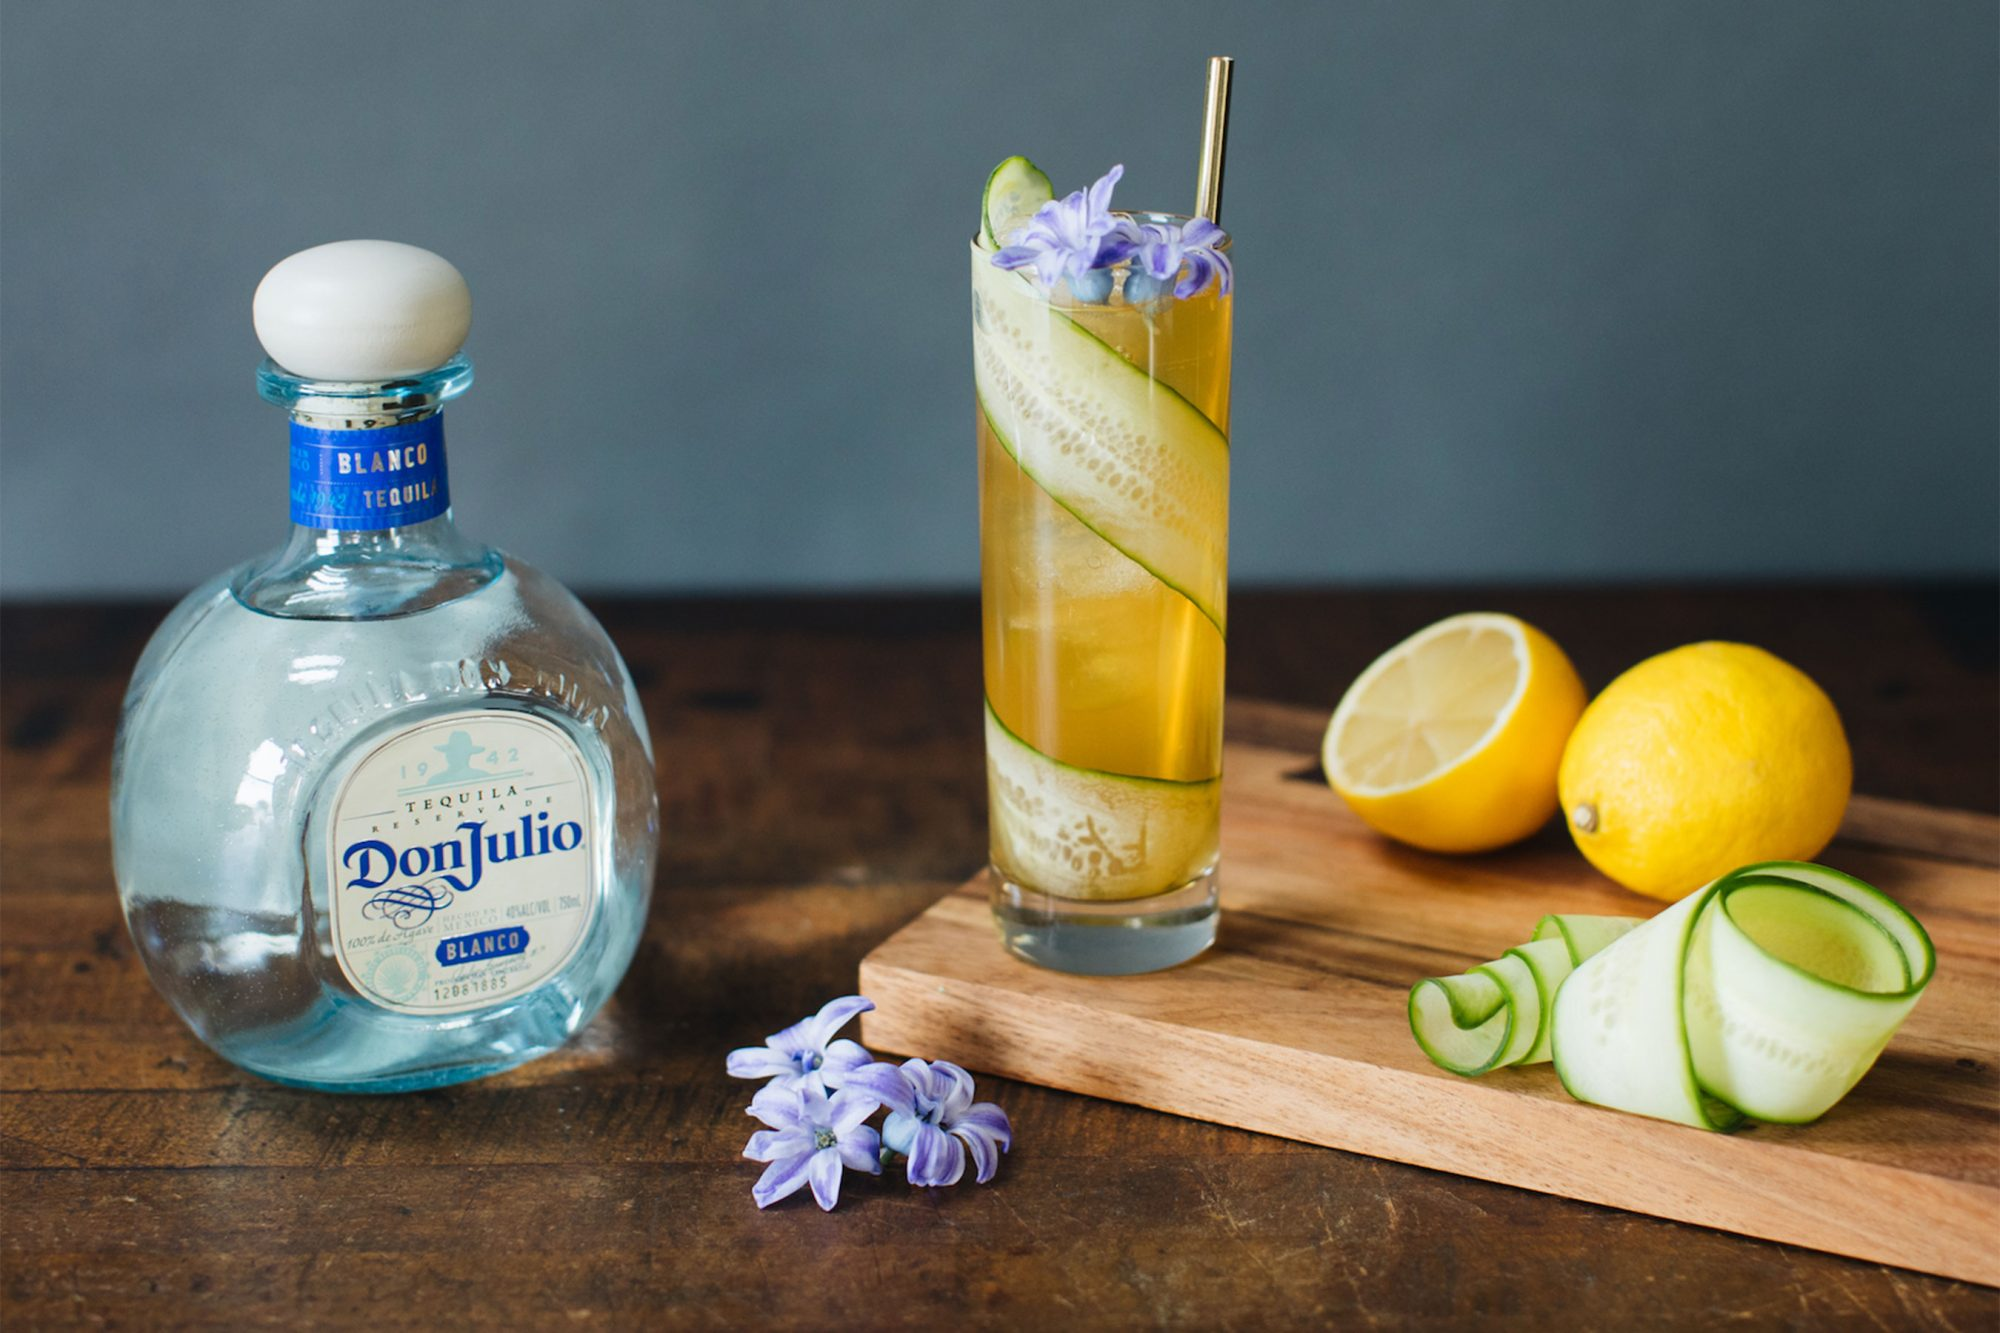 The Protagonist_Tequila Don Julio Governor's Ball Cocktail Created by Charles Joly1